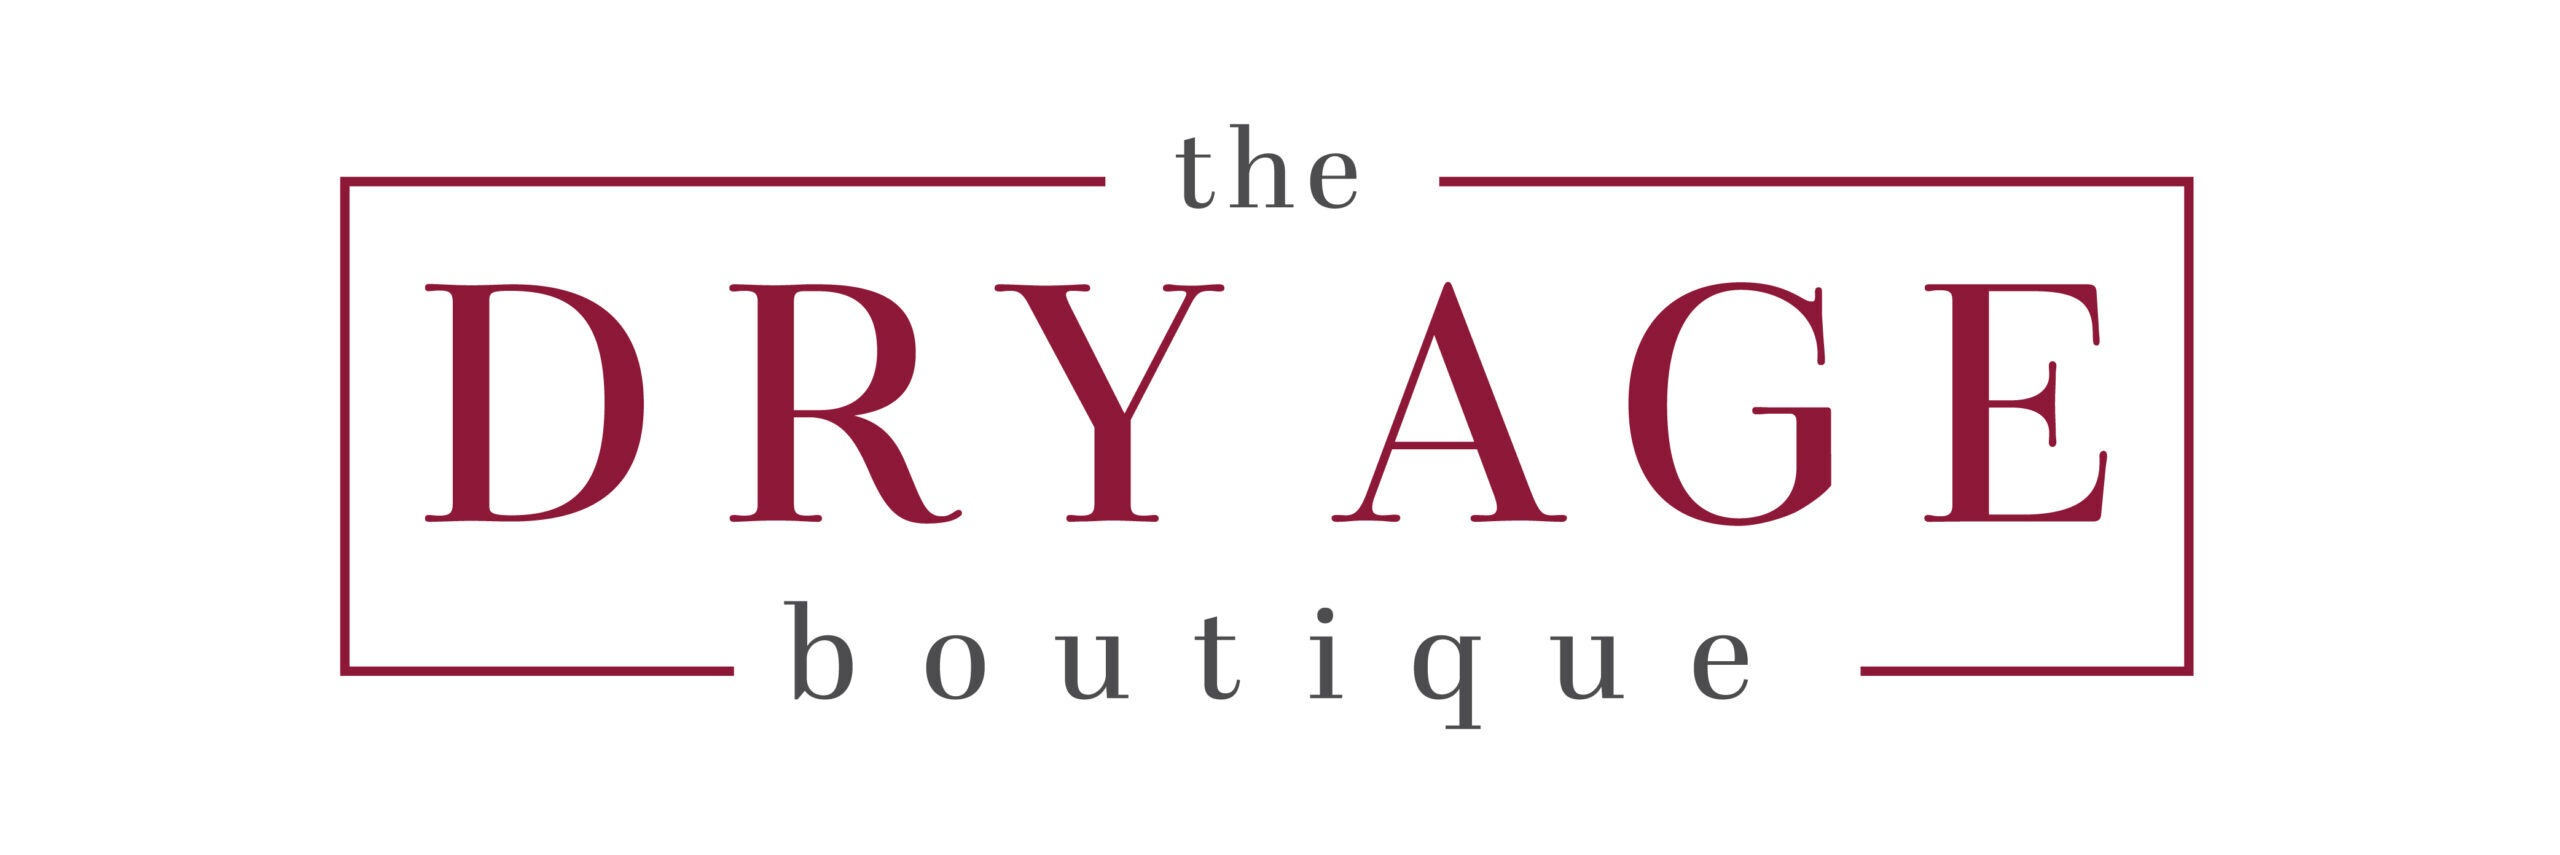 The Dry Age Boutique